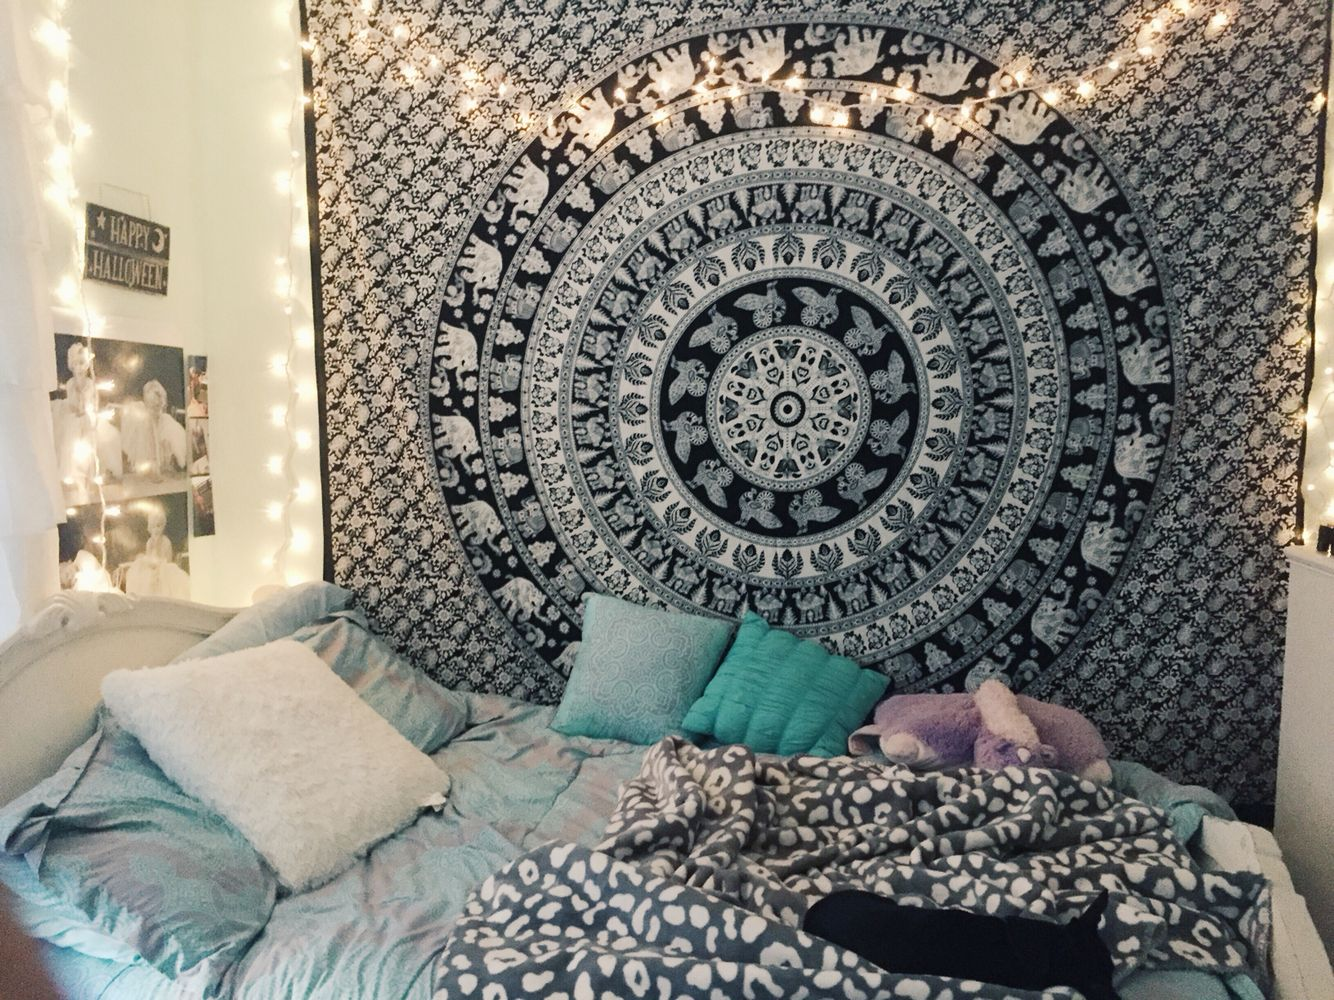 Tumblr Bedroom Inspiration Lights Tapestry Pillows